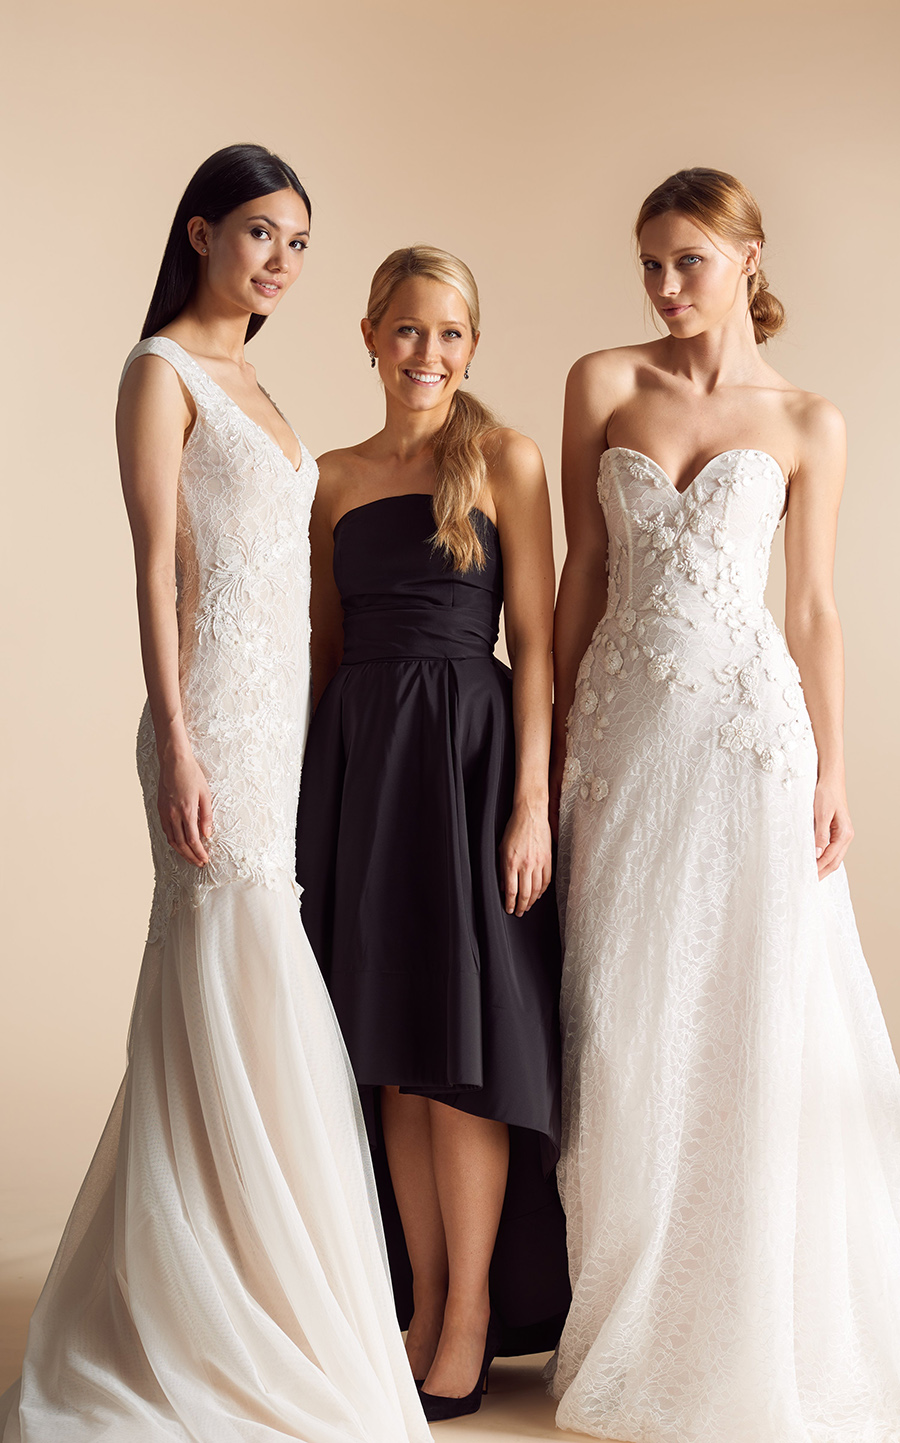 Introducing Allison Webb Wedding Dresses